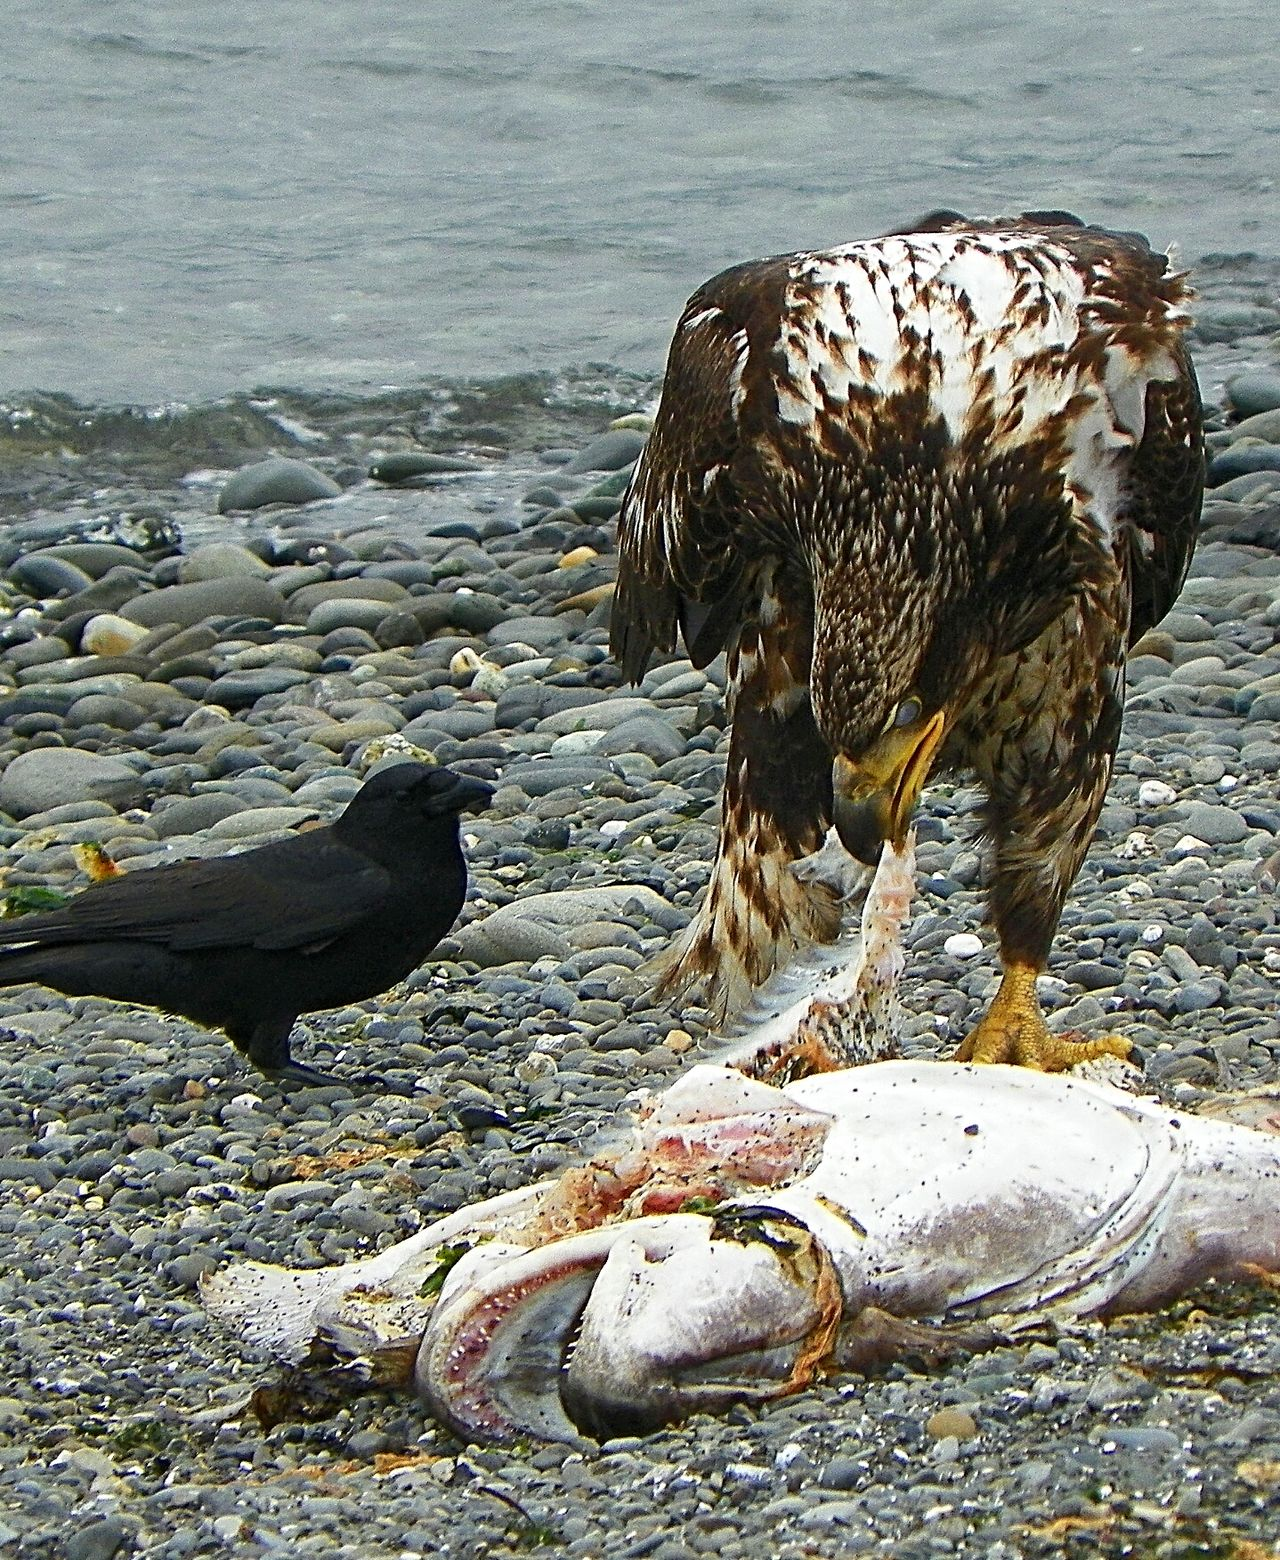 Bald Eagle and Crow taking advantage of halibut season. Bird Photography Eaglephotography Eagle Young Eagle Beach Eagle And Raven Nature Photography Bird Of Prey Port Angeles Washington Brave Little One The Great Outdoors - 2016 EyeEm Awards EyeEm Best Shots EyeEmBestPics Eye4photograghy Pacific Northwest  Check This Out Beach Life EyeEm Gallery Raptor Natures Diversities EyeEm Best Shots - Nature The EyeEm Collection